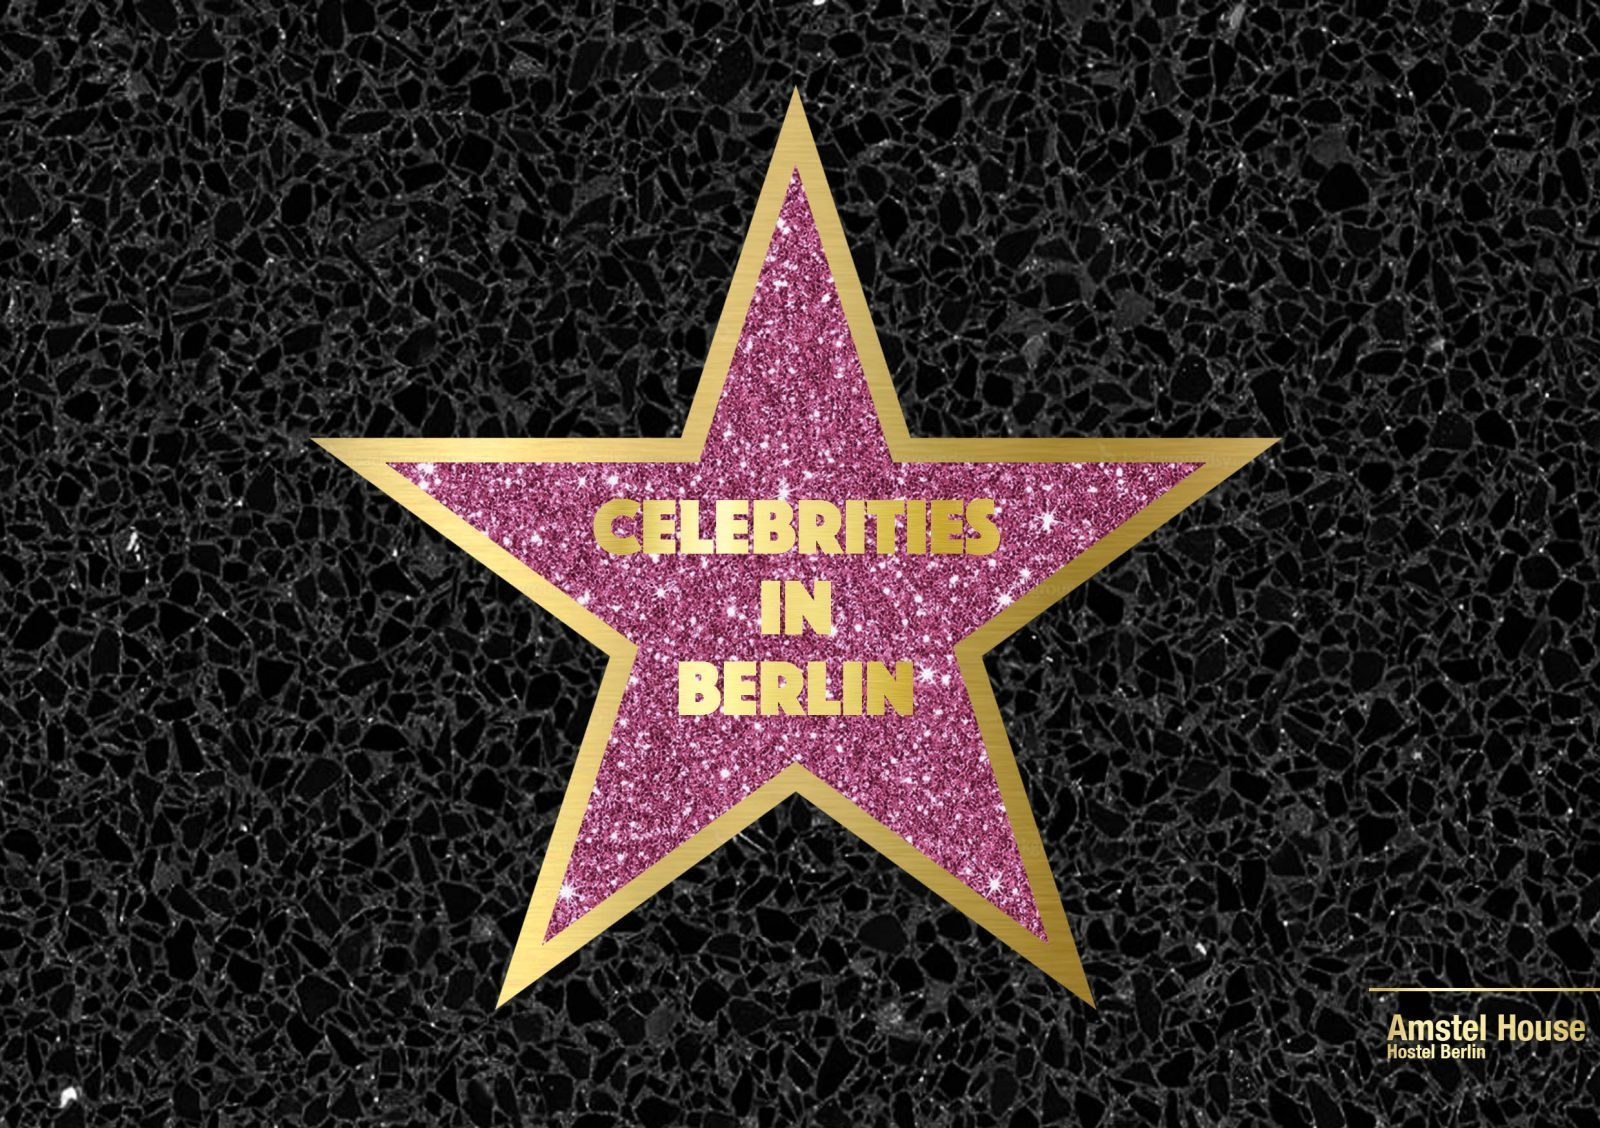 Best places for spotting celebrities in Berlin